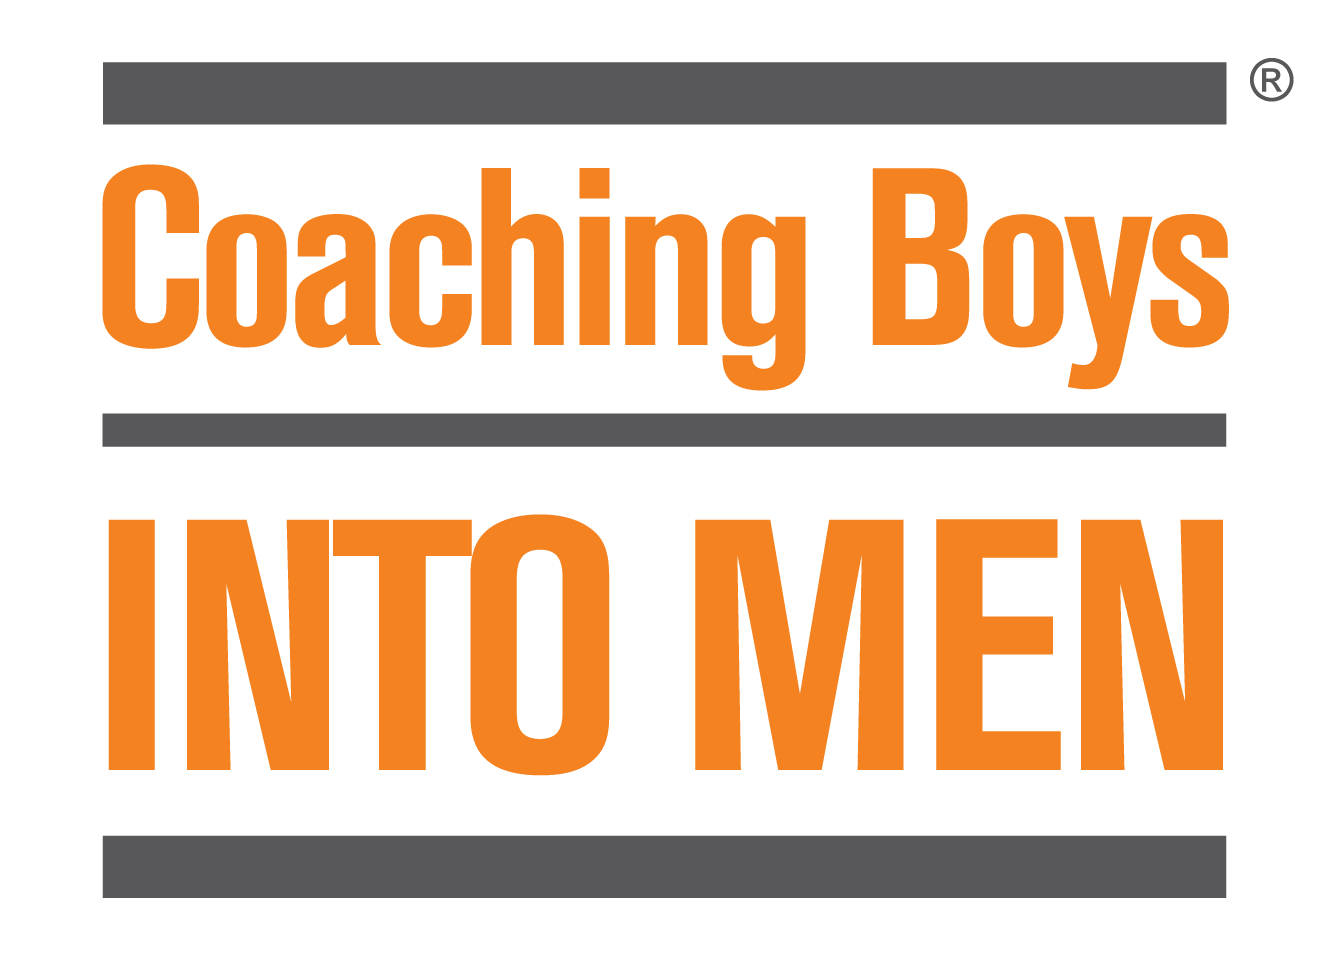 Coaching Boys Into Men (CBIM)